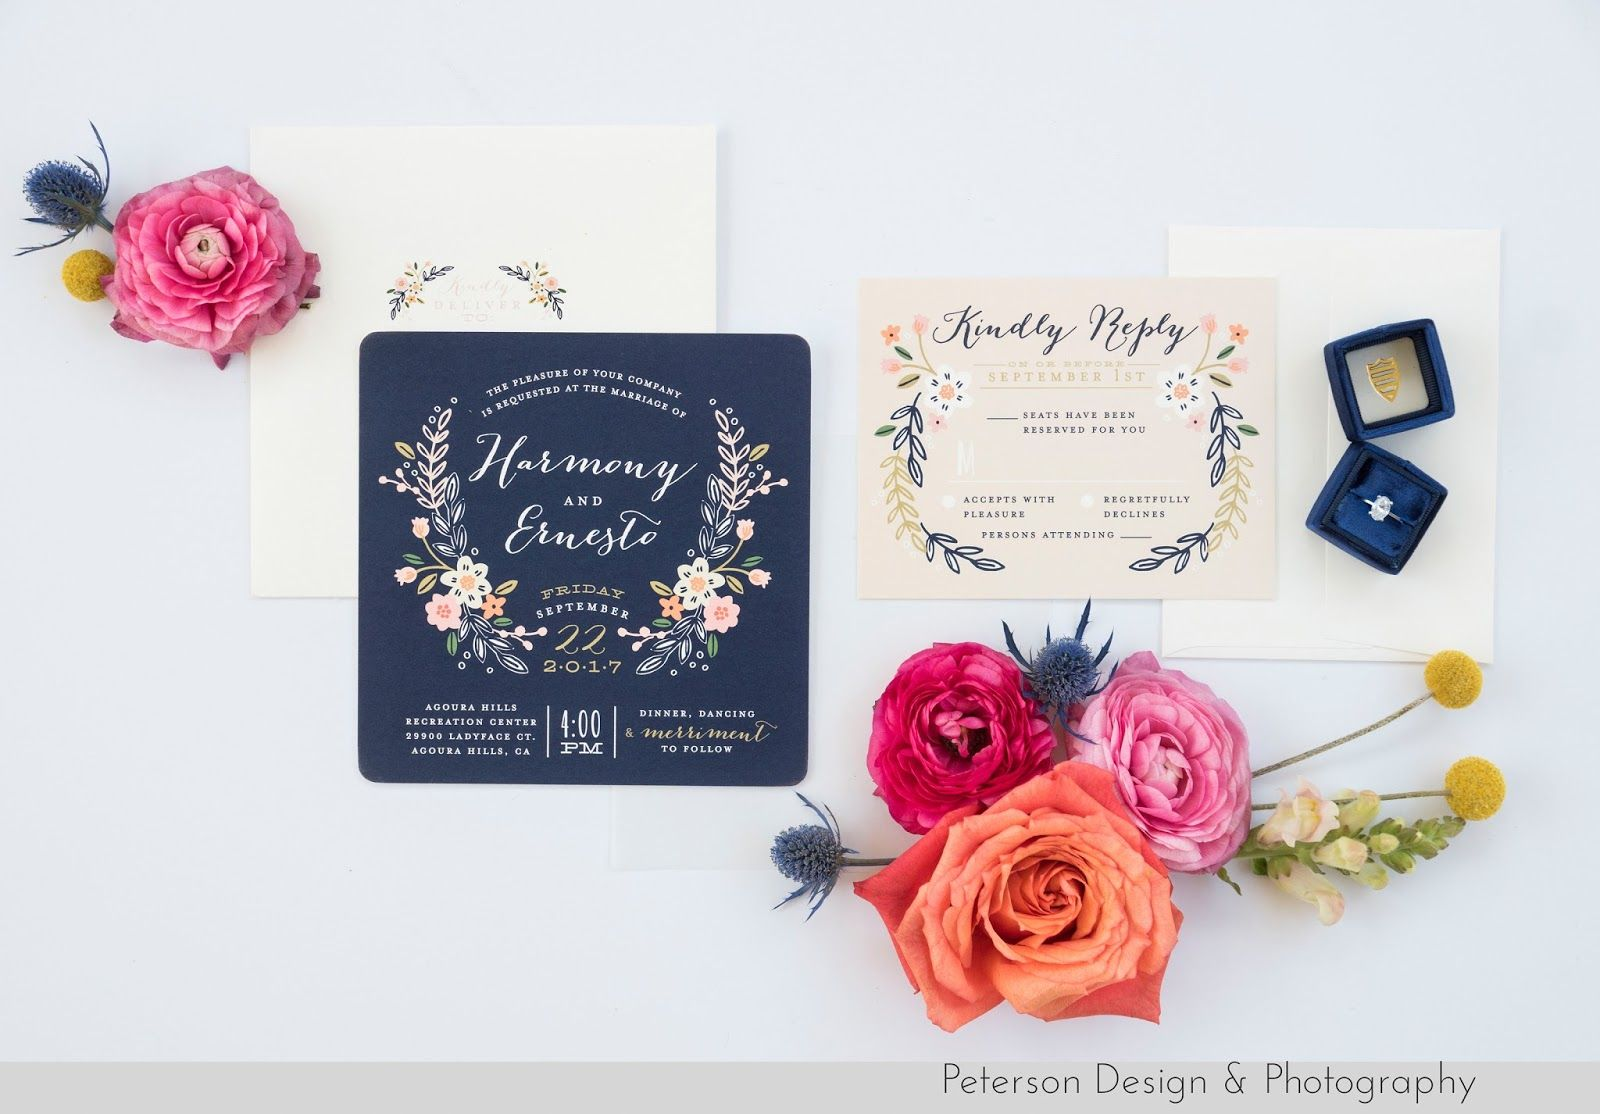 Invitation suite from minted at this colorful laid back and fun invitation suite from minted at this colorful laid back and fun wedding at the agoura solutioingenieria Image collections